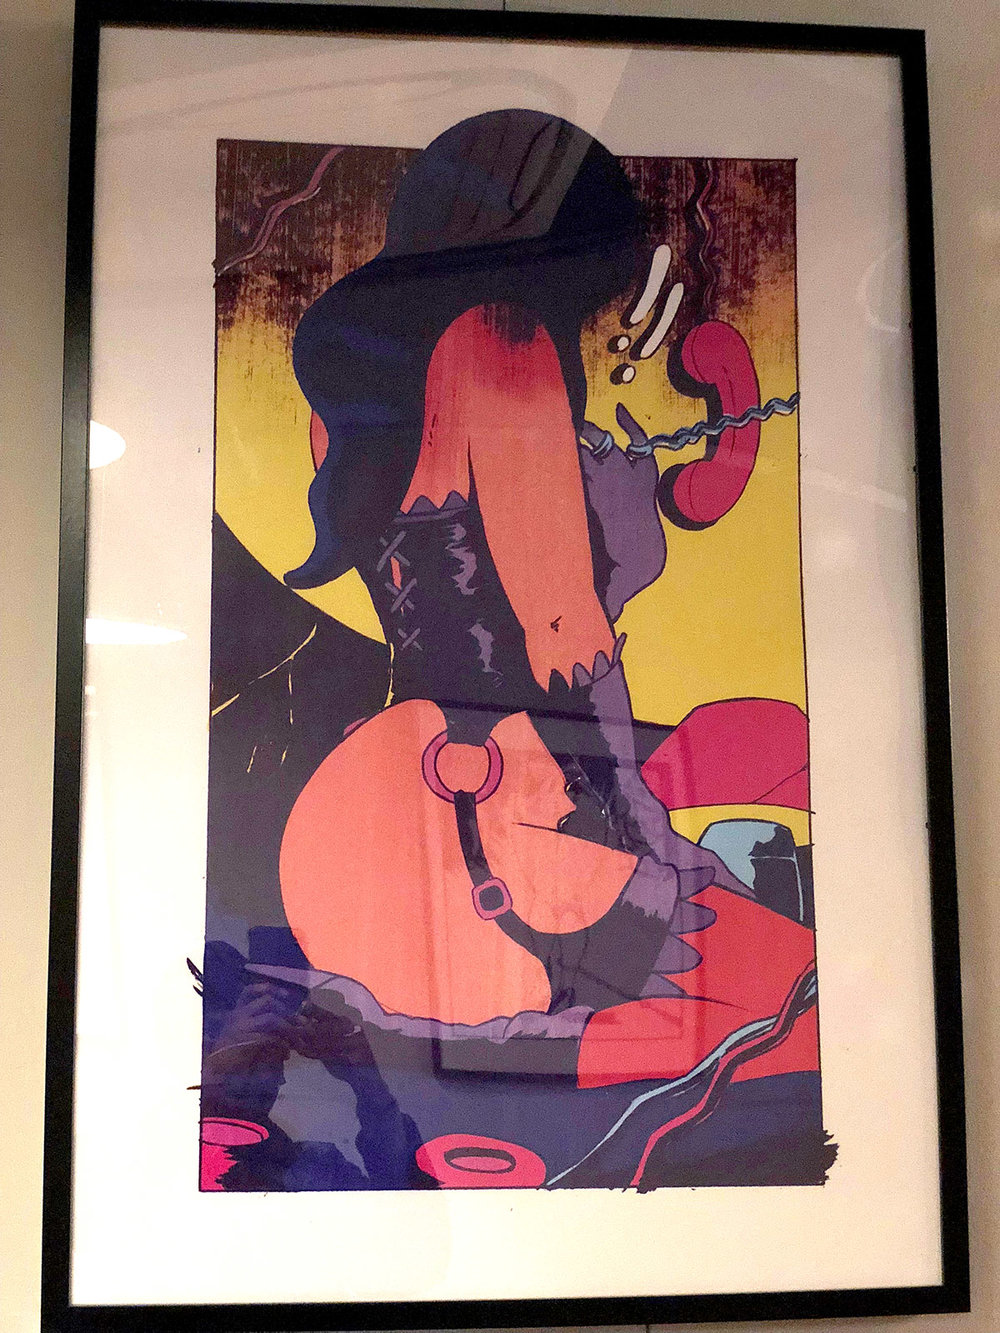 Framed Print 'Suspended Call III'- Selected Print Works Exhibition (London NW10)